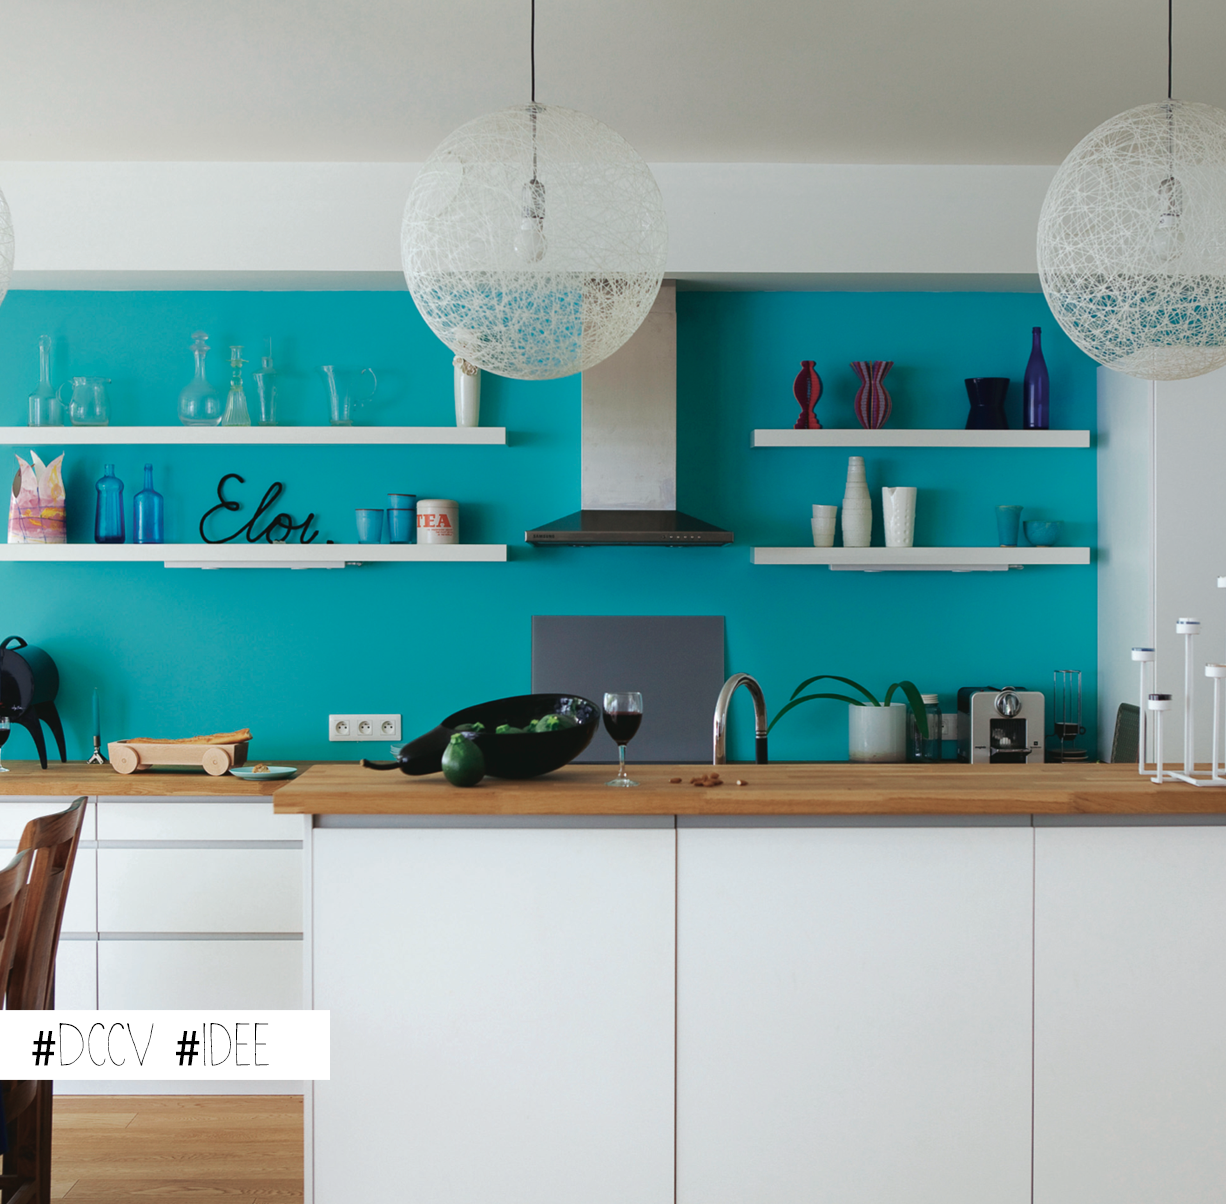 id e maline gayer une cuisine blanche en peignant le mur du fond en turquoise cuisine idee. Black Bedroom Furniture Sets. Home Design Ideas